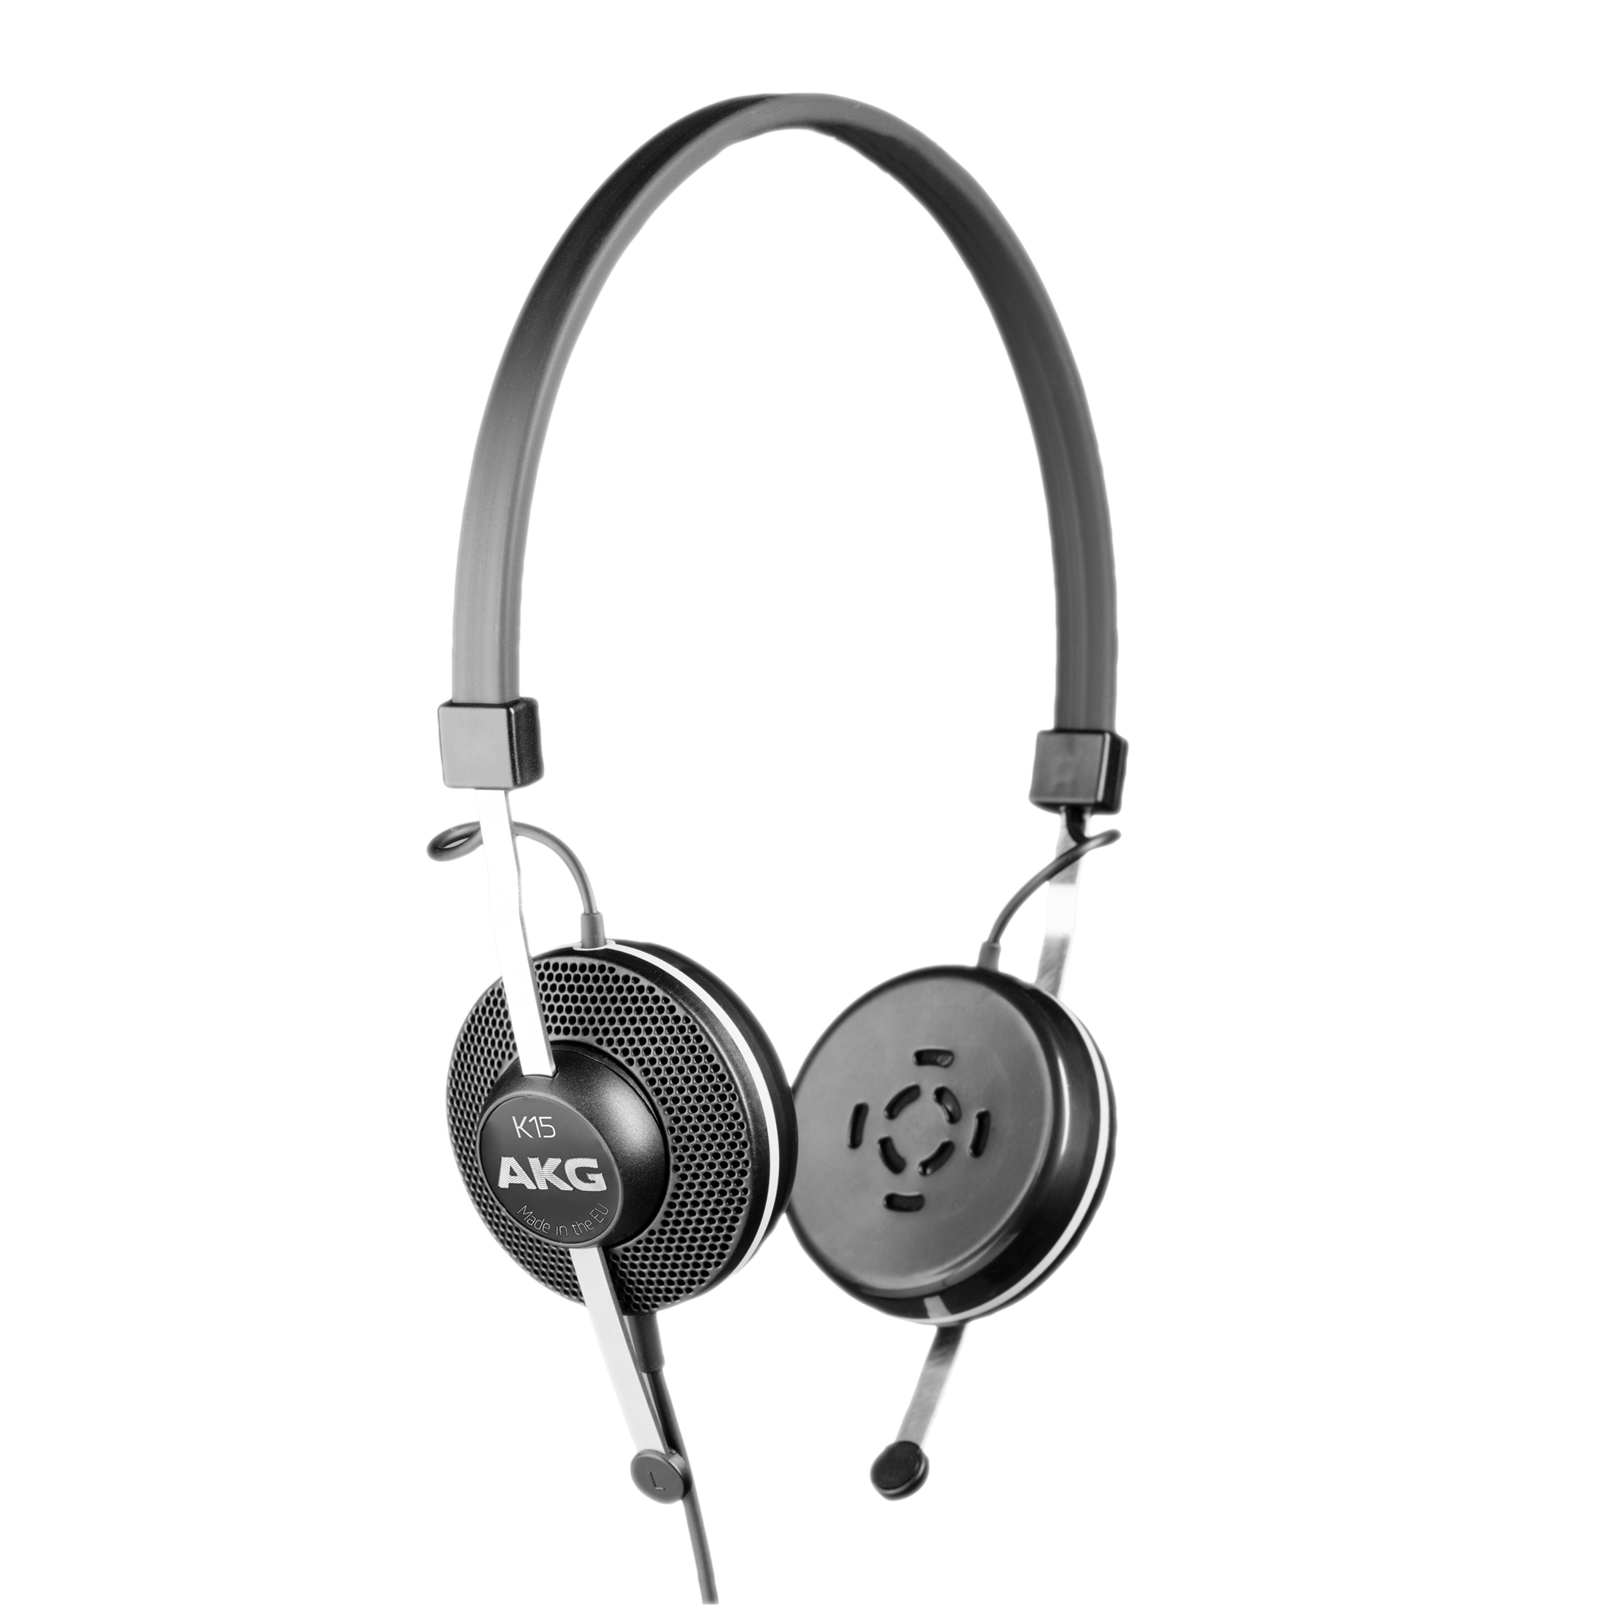 K15 - Black - High-performance conference headphones - Hero